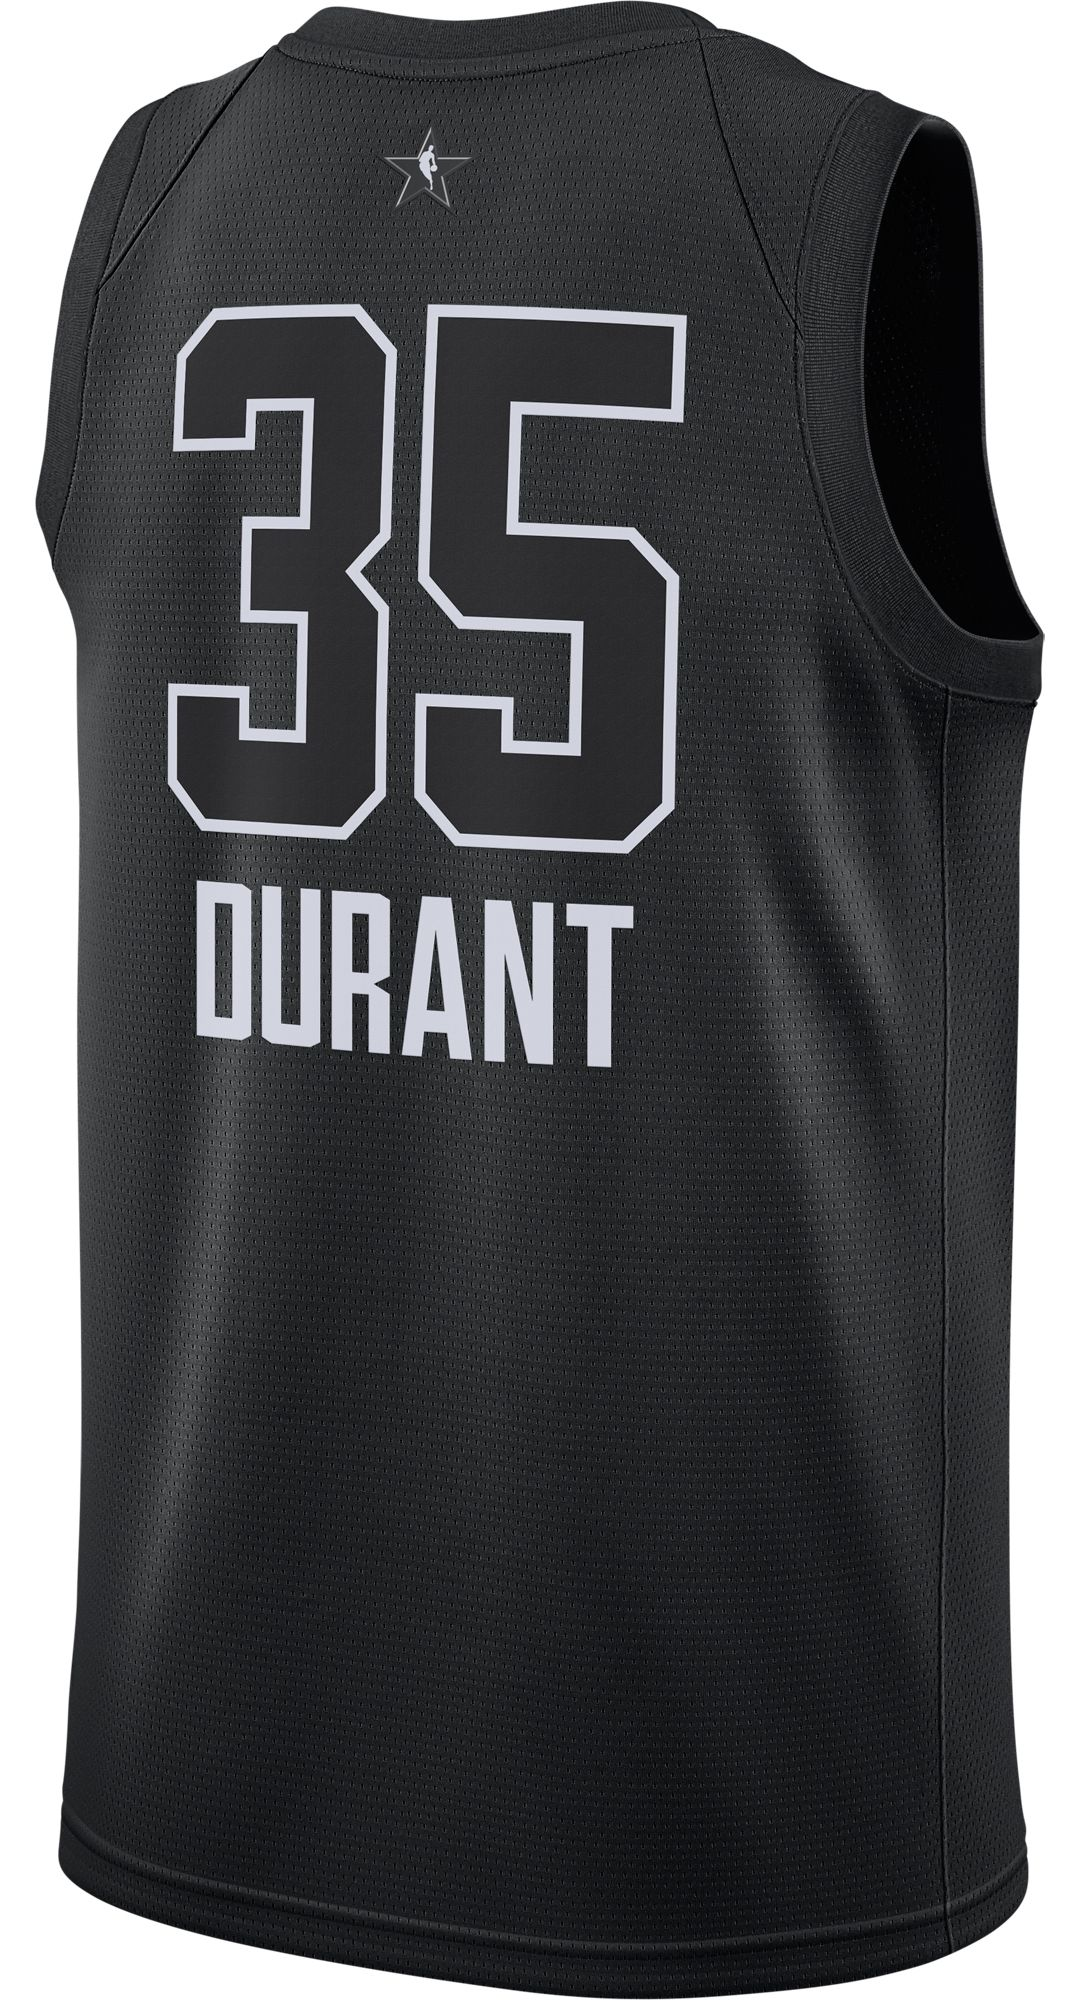 4e85cc1594a Jordan Men s 2018 NBA All-Star Game Kevin Durant Black Dri-FIT Swingman  Jersey